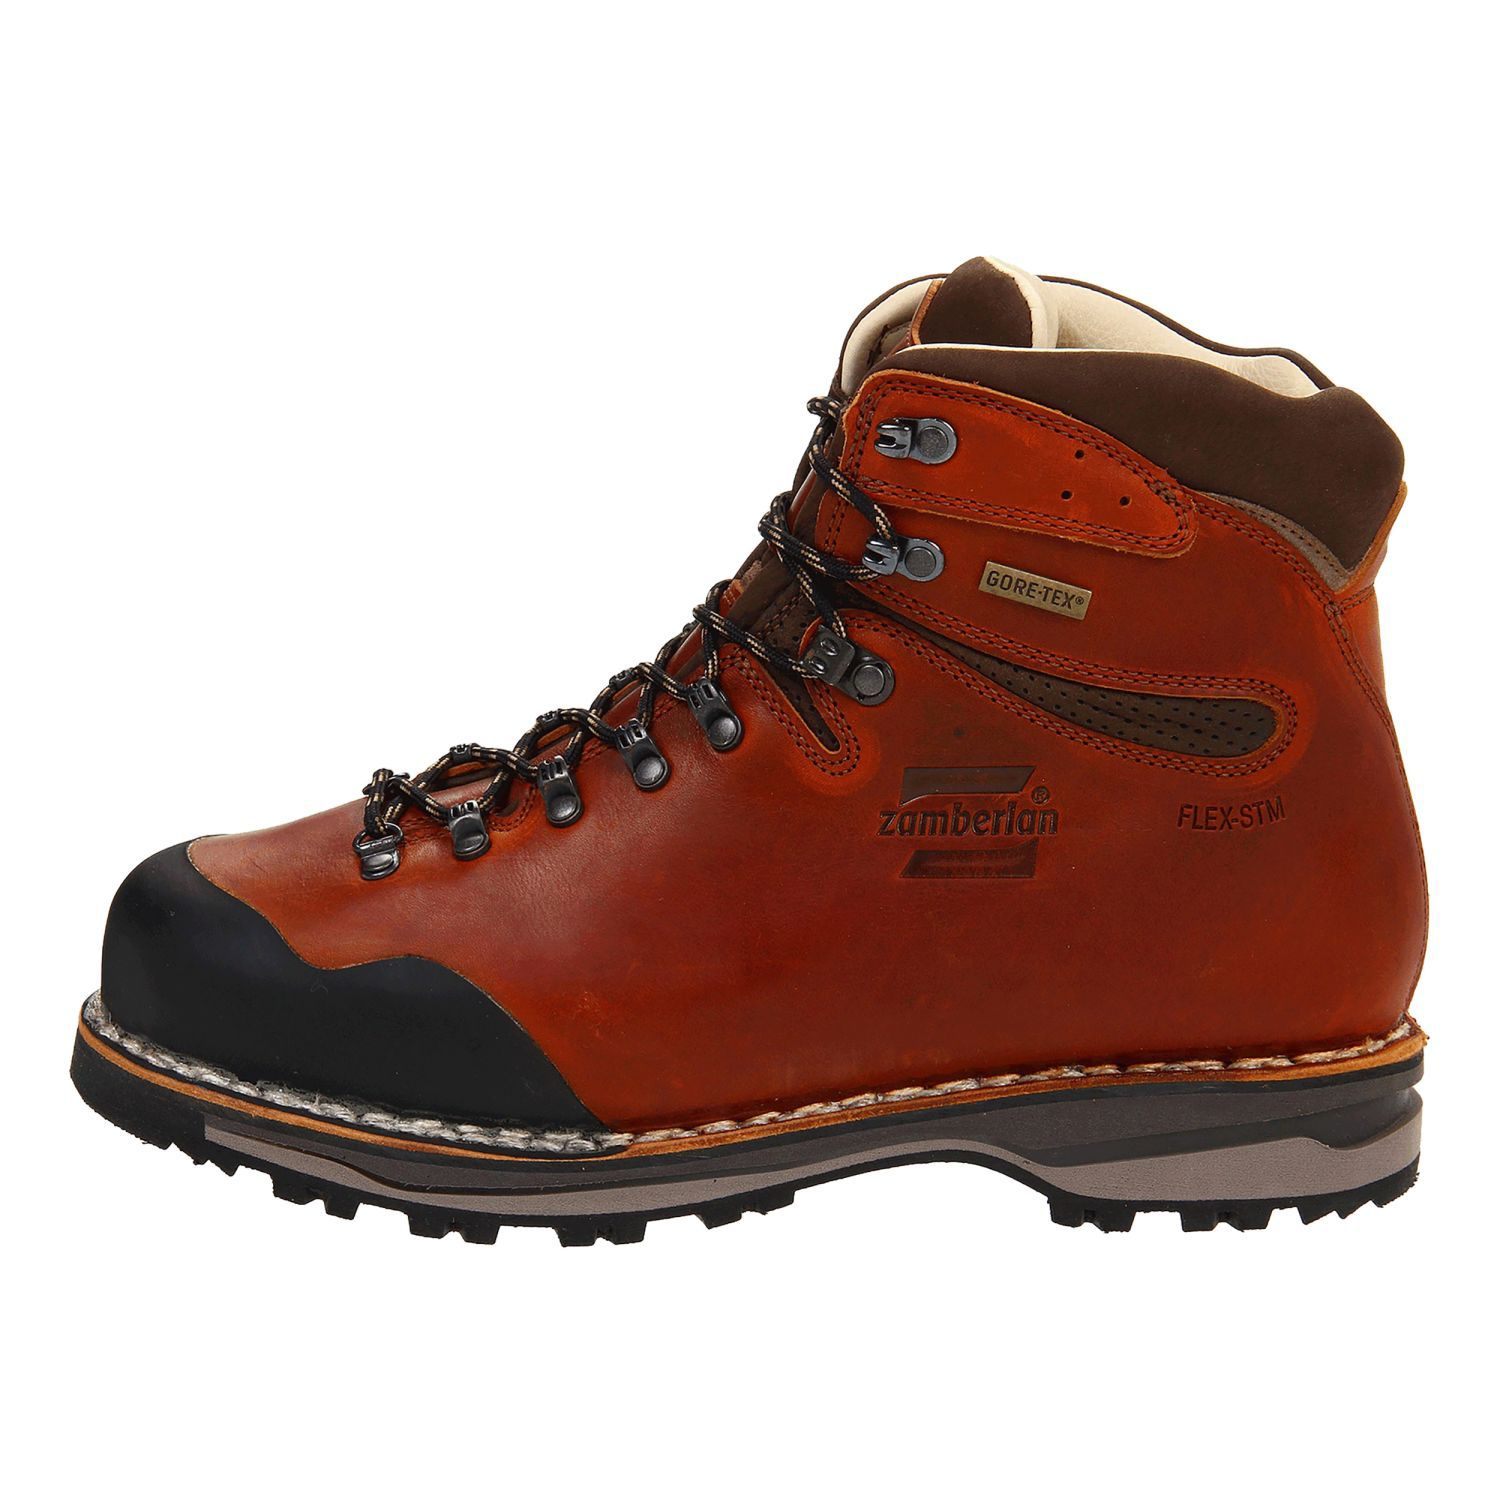 b7367d406 Men s Backpacking Shoes at MountainGear.com